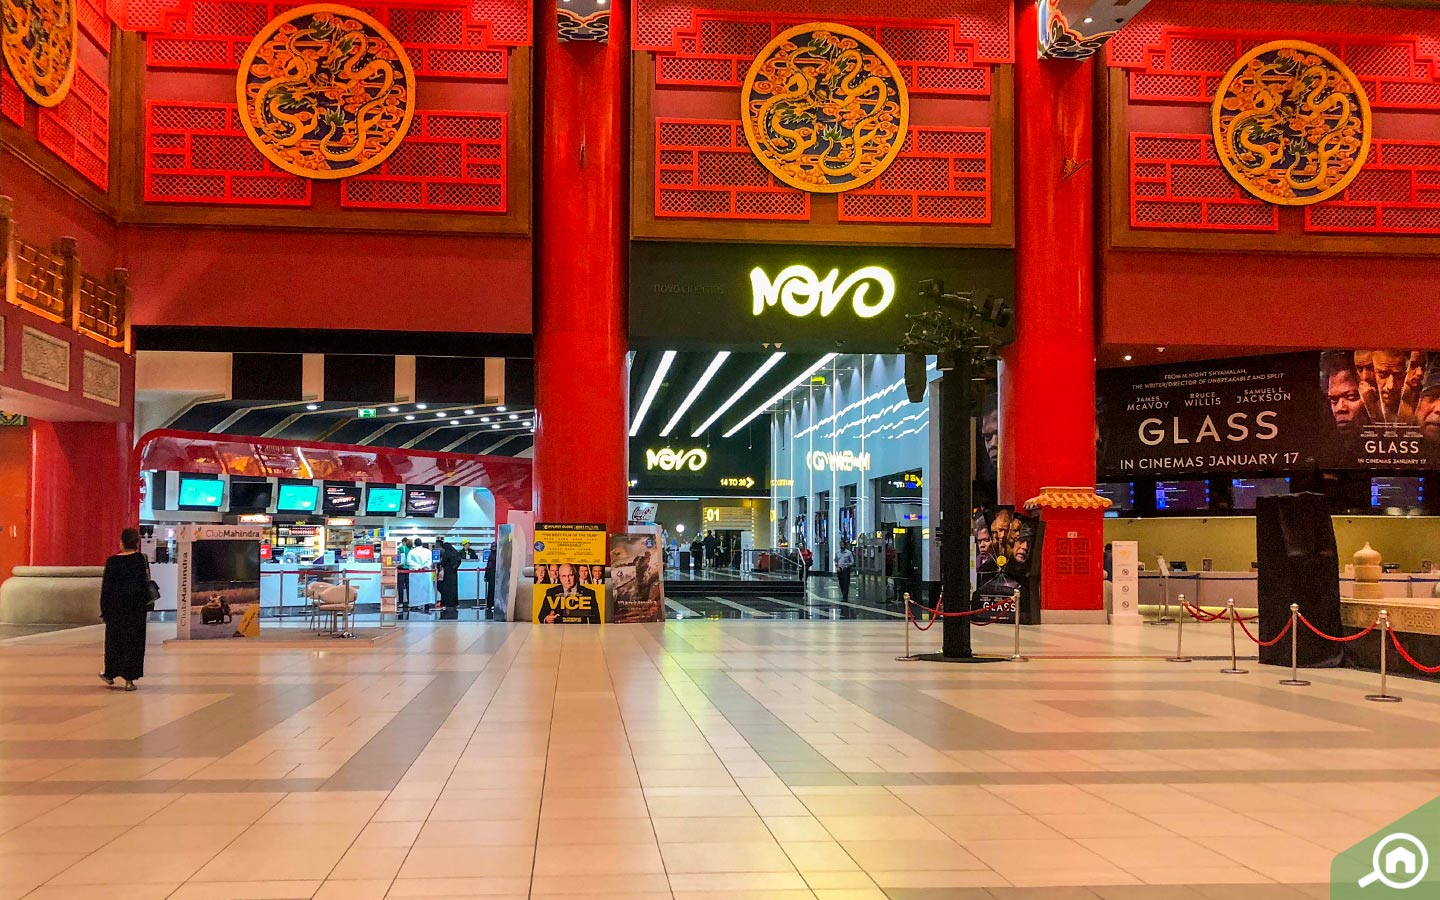 View of Novo Cinemas, one of the best things to do in Ibn Battuta Mall